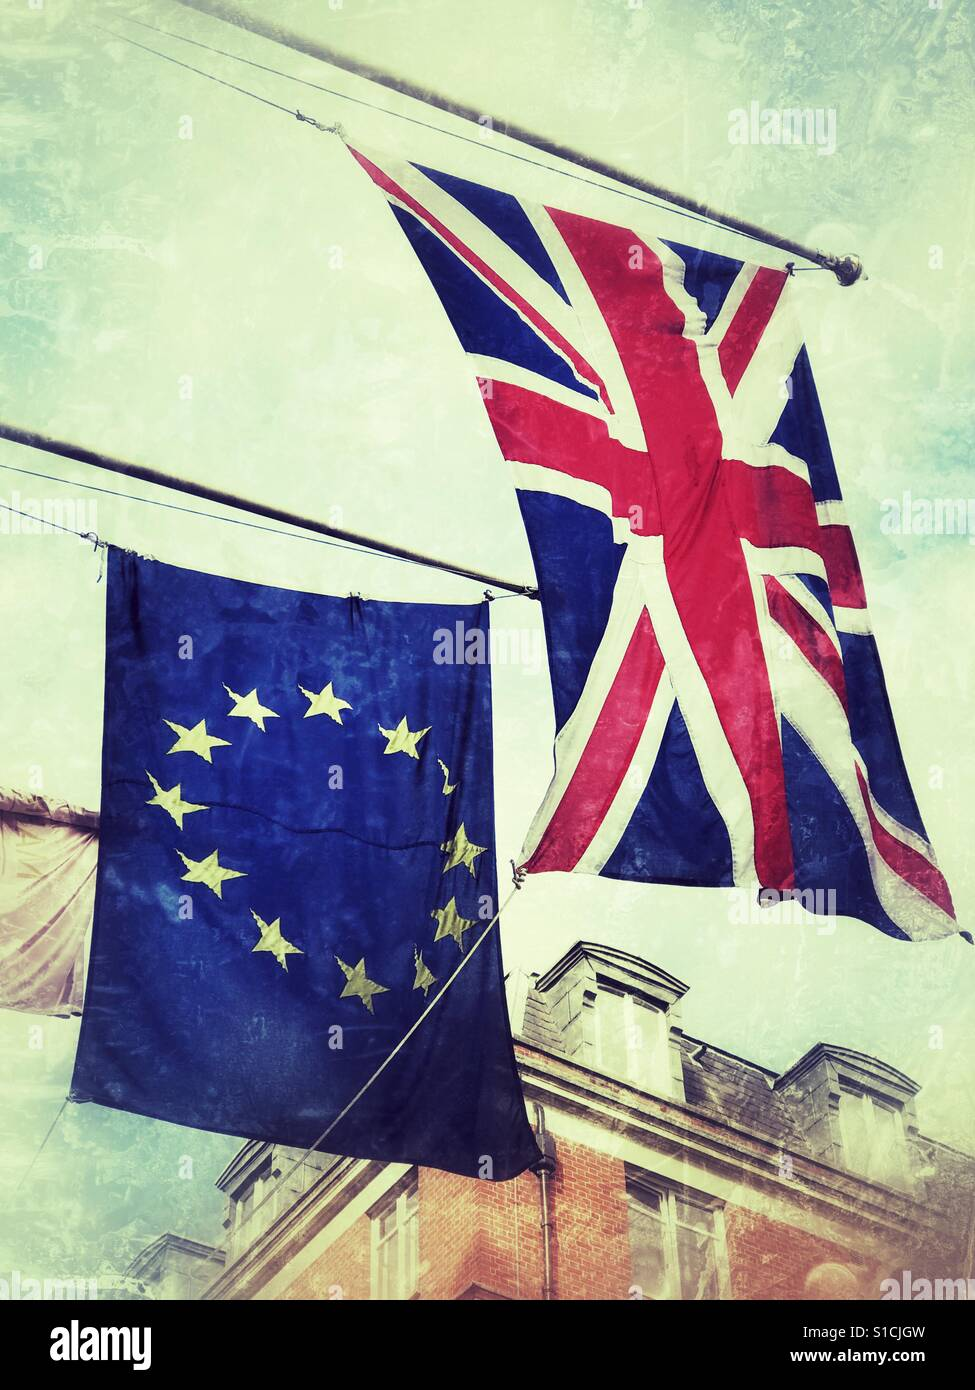 The Union Jack & the European Union flags flying side by side. Stock Photo